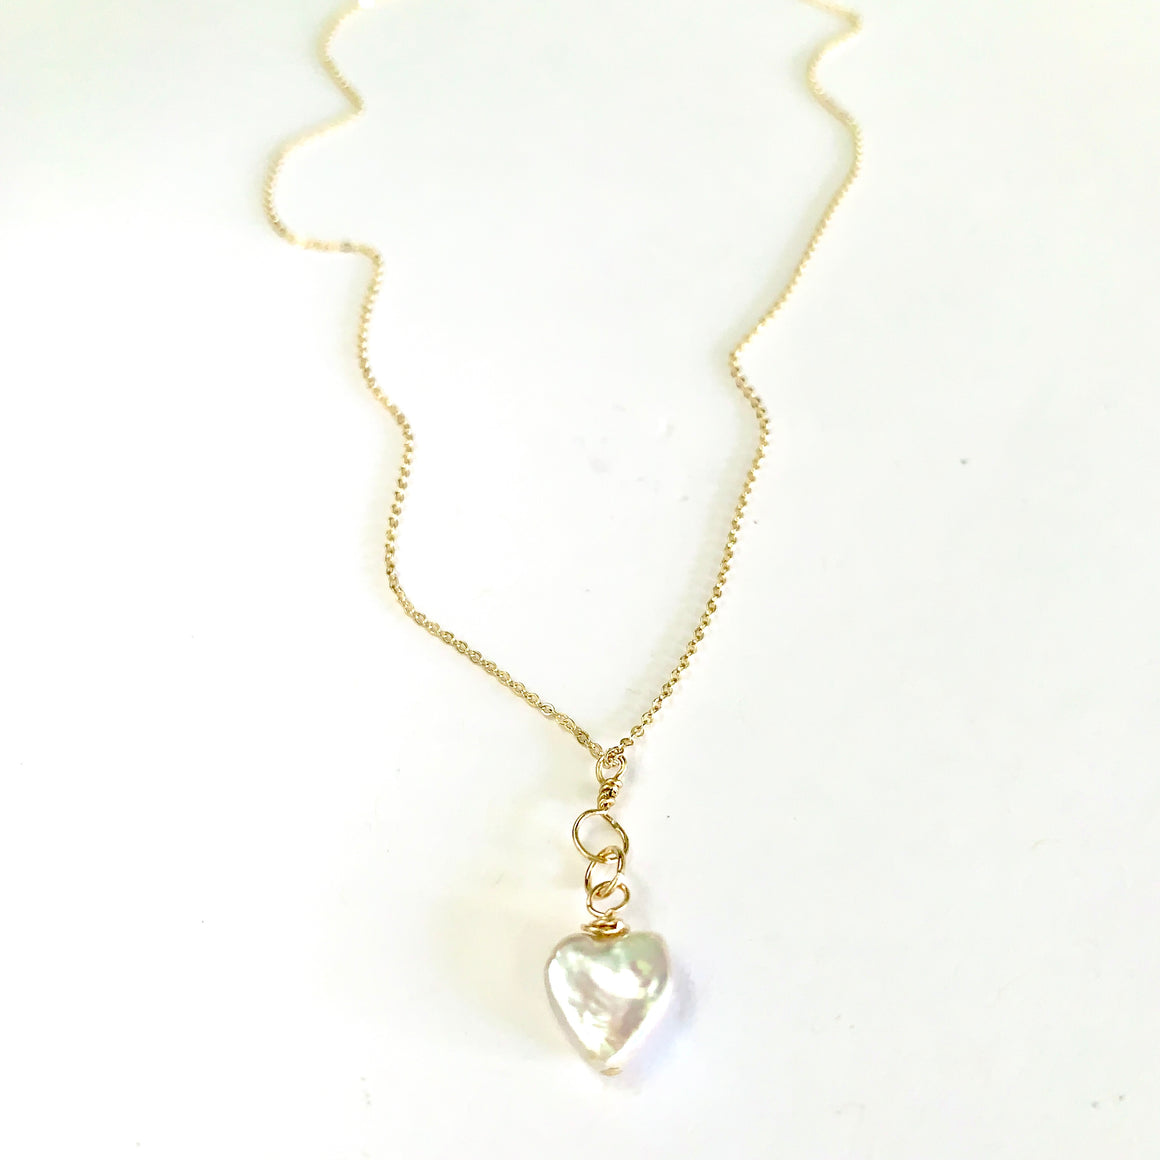 Eden pearl heart necklace